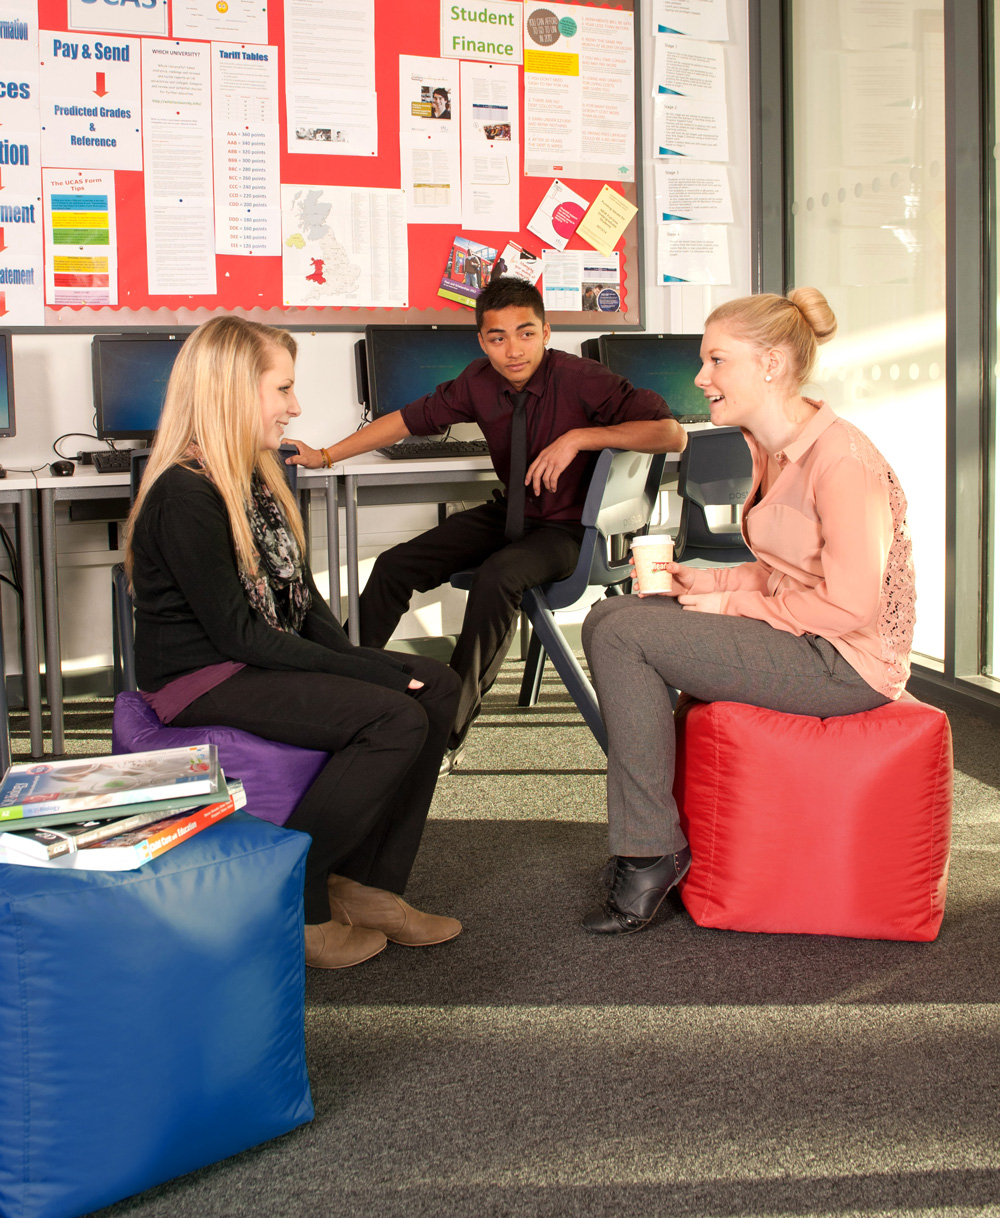 """- """"By using the luxury of reading on the bean bags as a reward system, students have extra encouragement to get into enjoying their books. It therefore promotes a positive reading model and improves the students opinions of 'reading lessons' overall.""""Sally Baker, Durrington High School"""